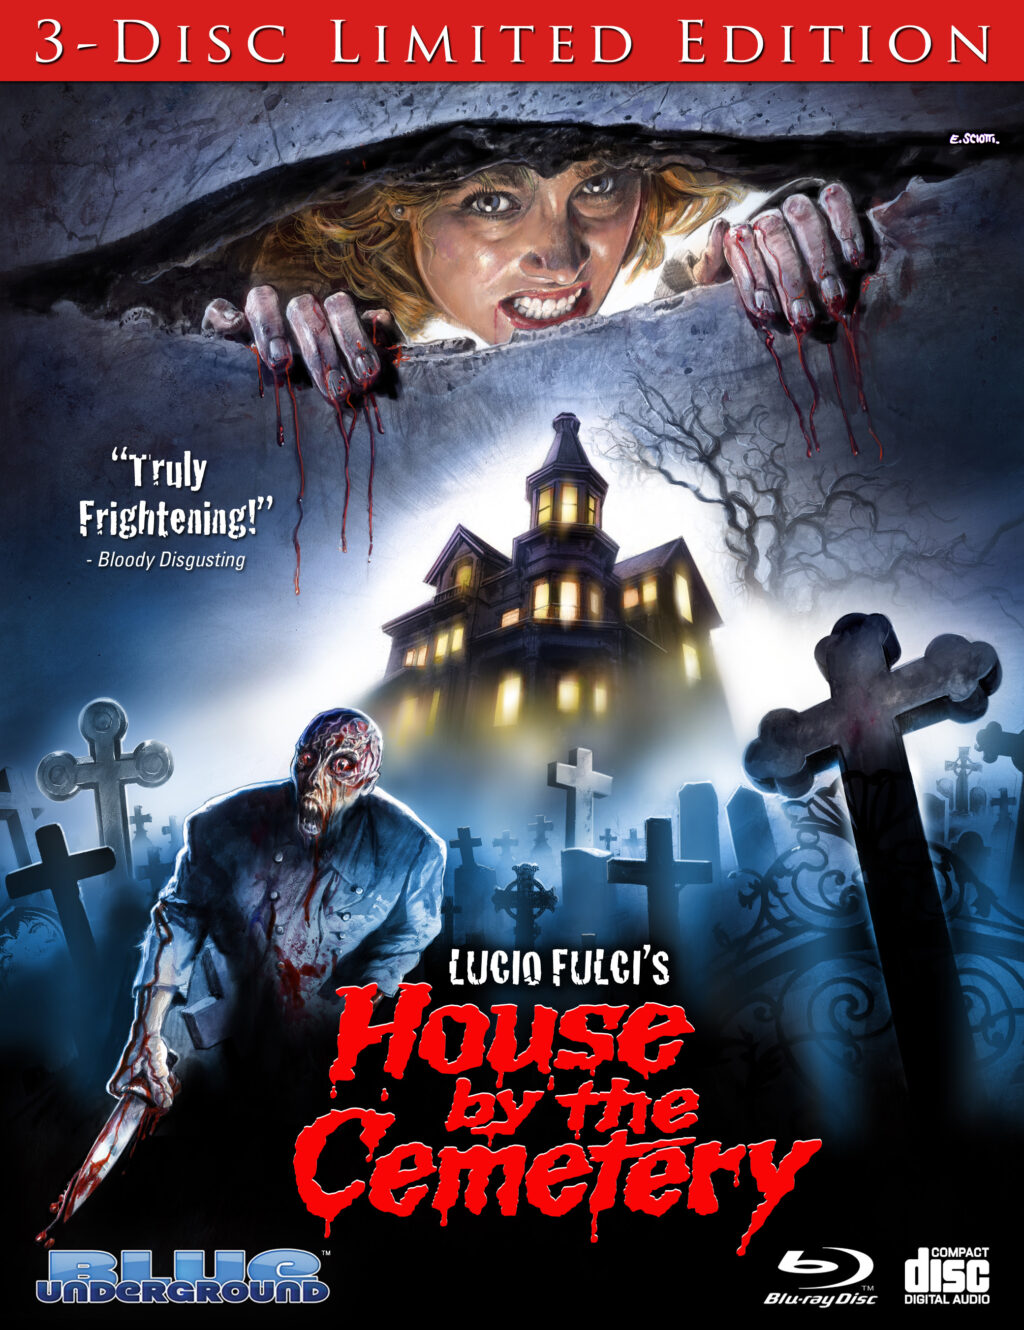 House by the Cemetery Blue Underground 1024x1330 - HOUSE BY THE CEMETERY Blu-ray Review - Fulci Gore And Lovecraftian Lore